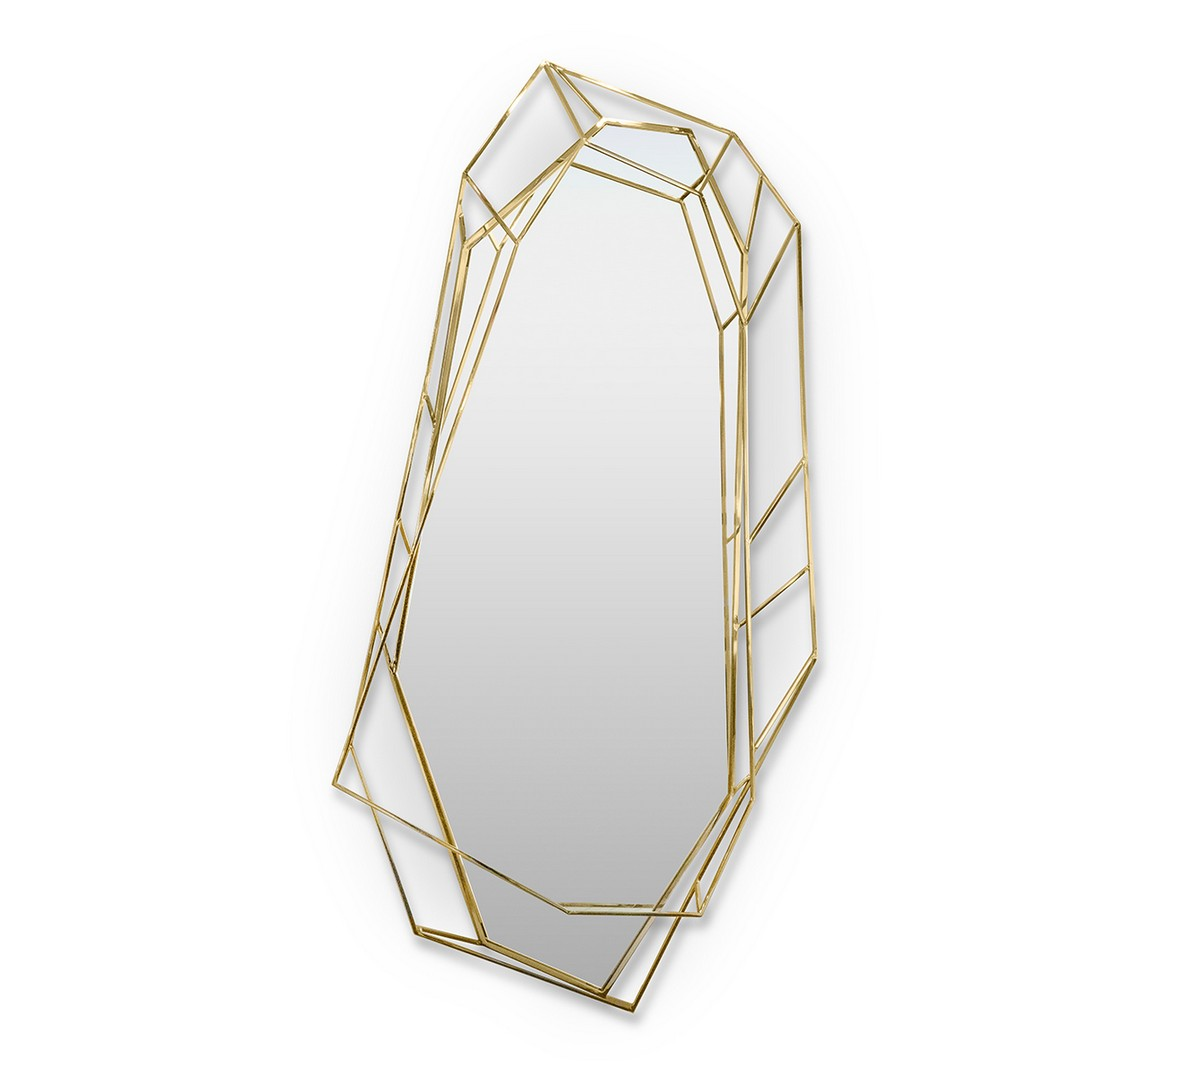 Covet House: Top Mirrors at Salone del Mobile Milano salone del mobile milano Covet House: Top Mirrors at Salone del Mobile Milano diamond2